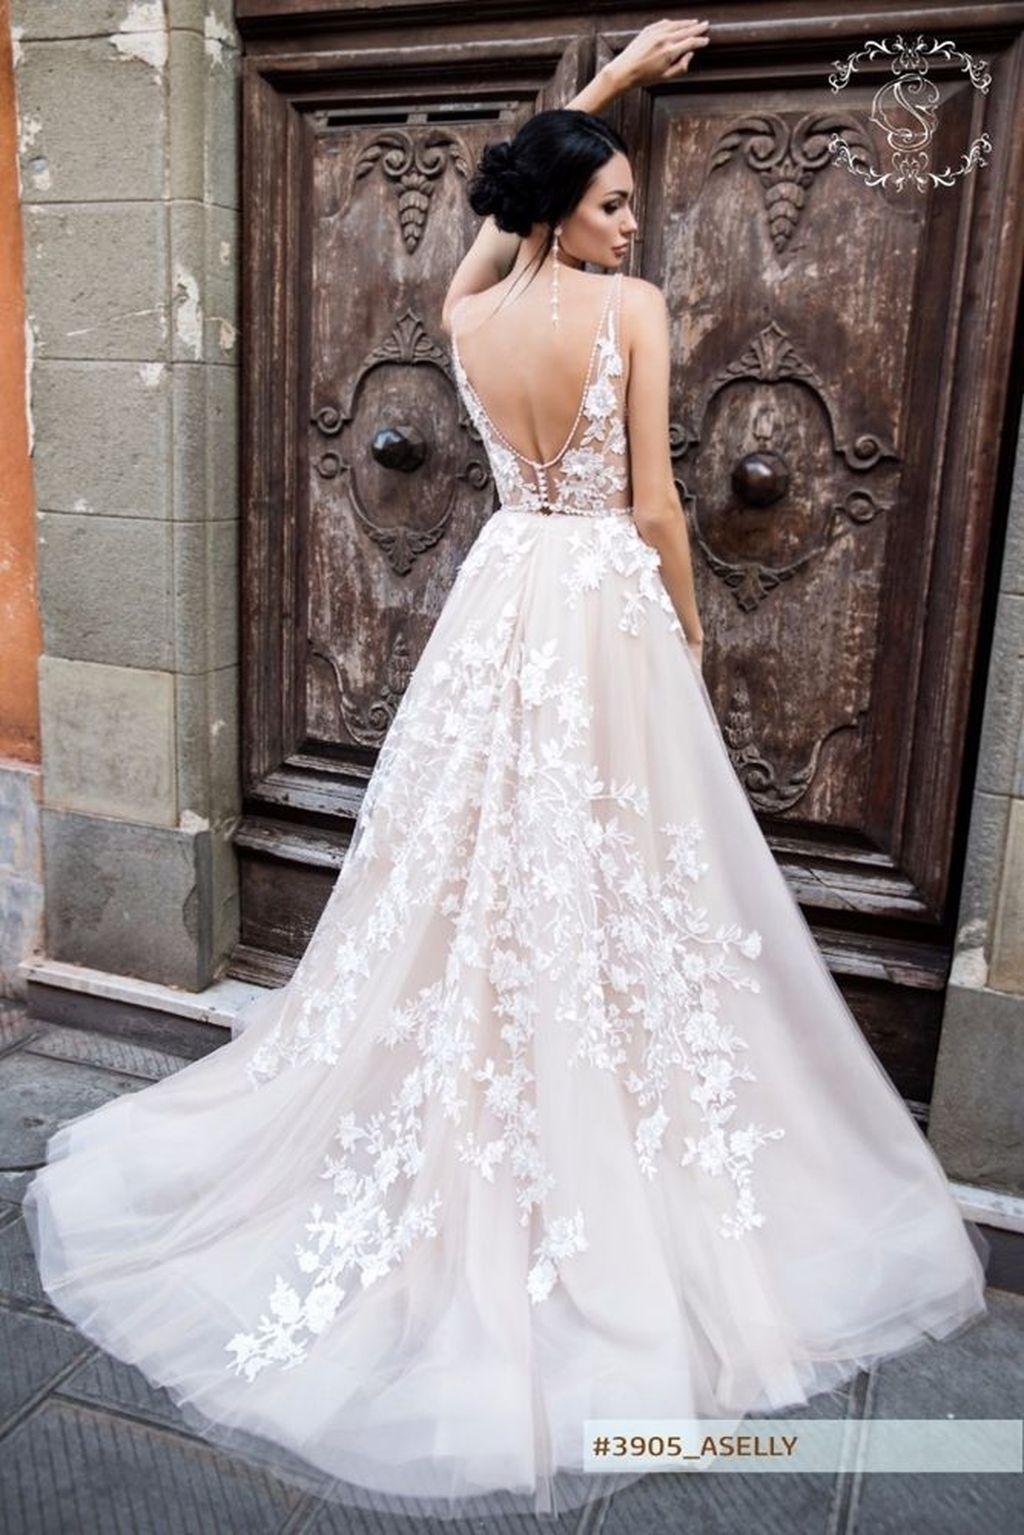 Awesome 30 Beautiful Pastel Wedding Gowns Design Ideas Pastel Wedding Dresses Wedding Dresses Wedding Gown Guide